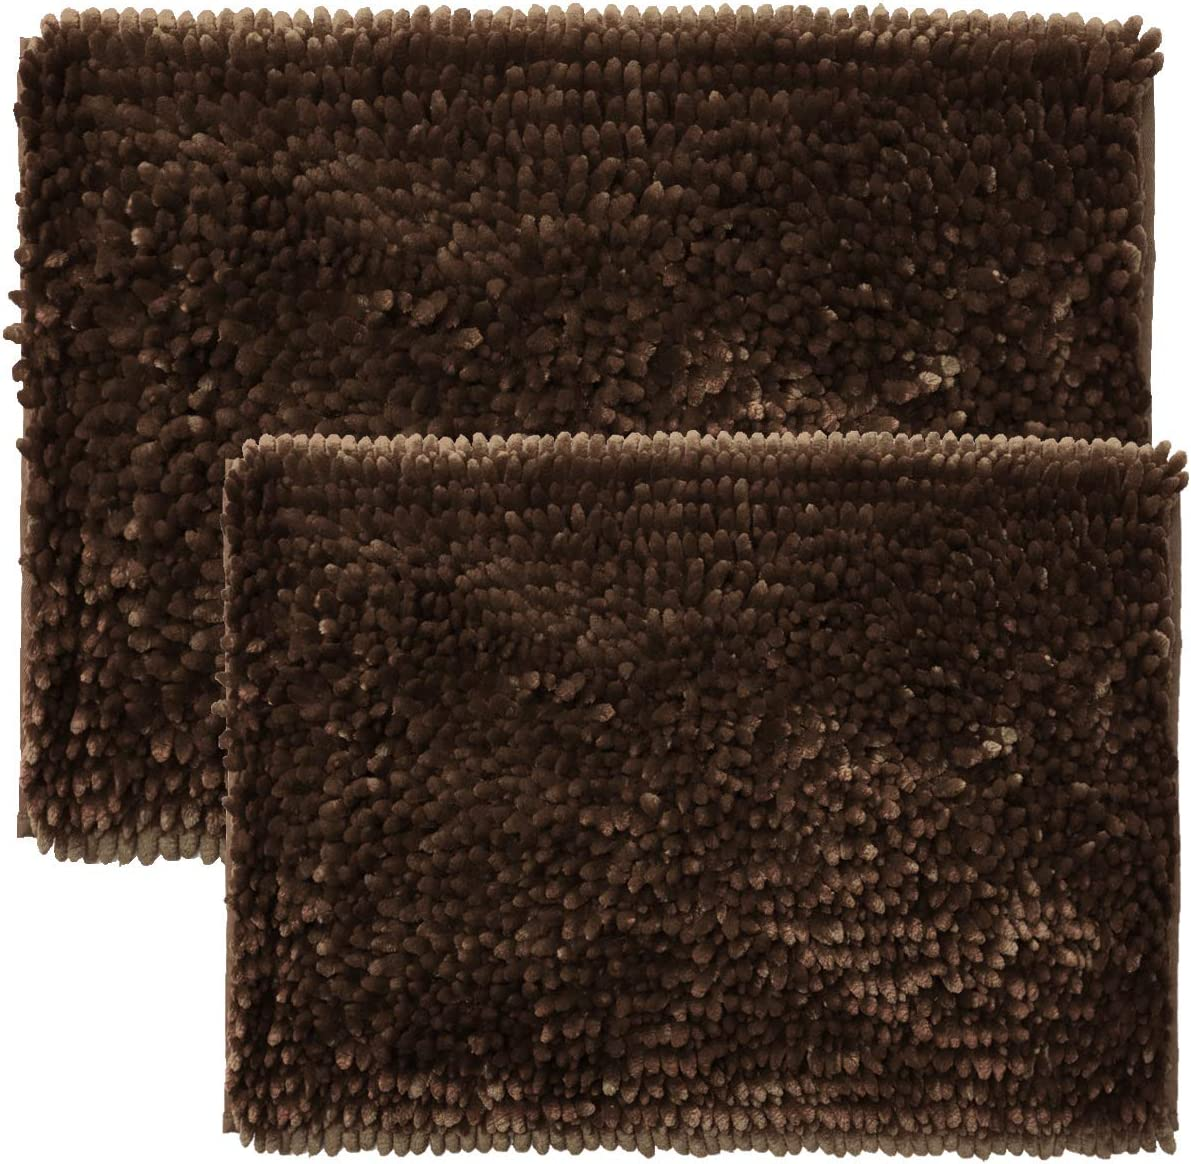 Amazon Com Sweet Home Collection Bath Set 2 Piece Butter Chenille Noodle Soft Luxurious Rugs Absorbent Non Slip Latex Back Microfiber Bathroom Mat 1 17 X 24 1 20 X 32 Coffee